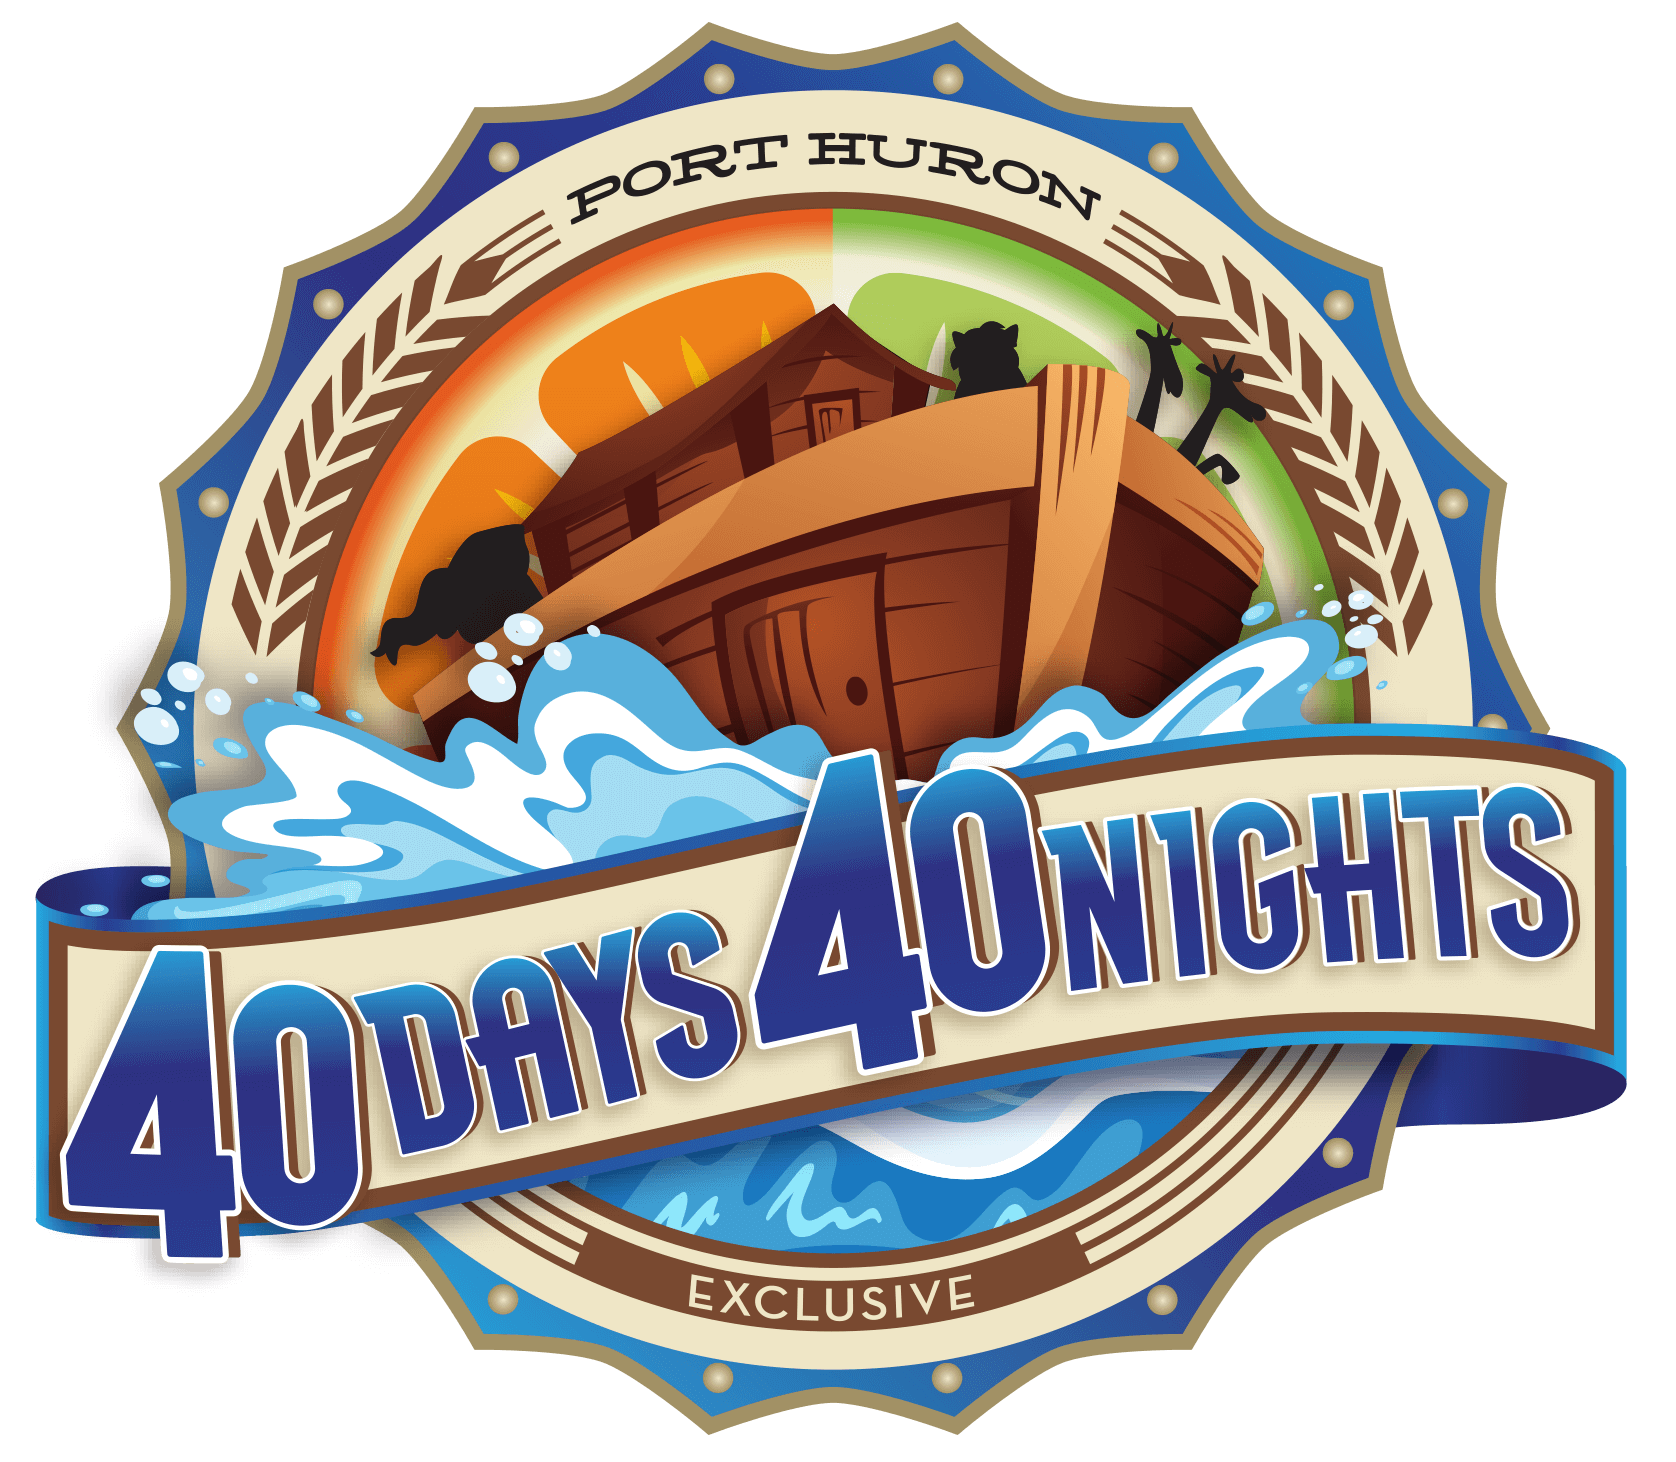 Port Huron - 40 Days 40 Nights Special Event Logo